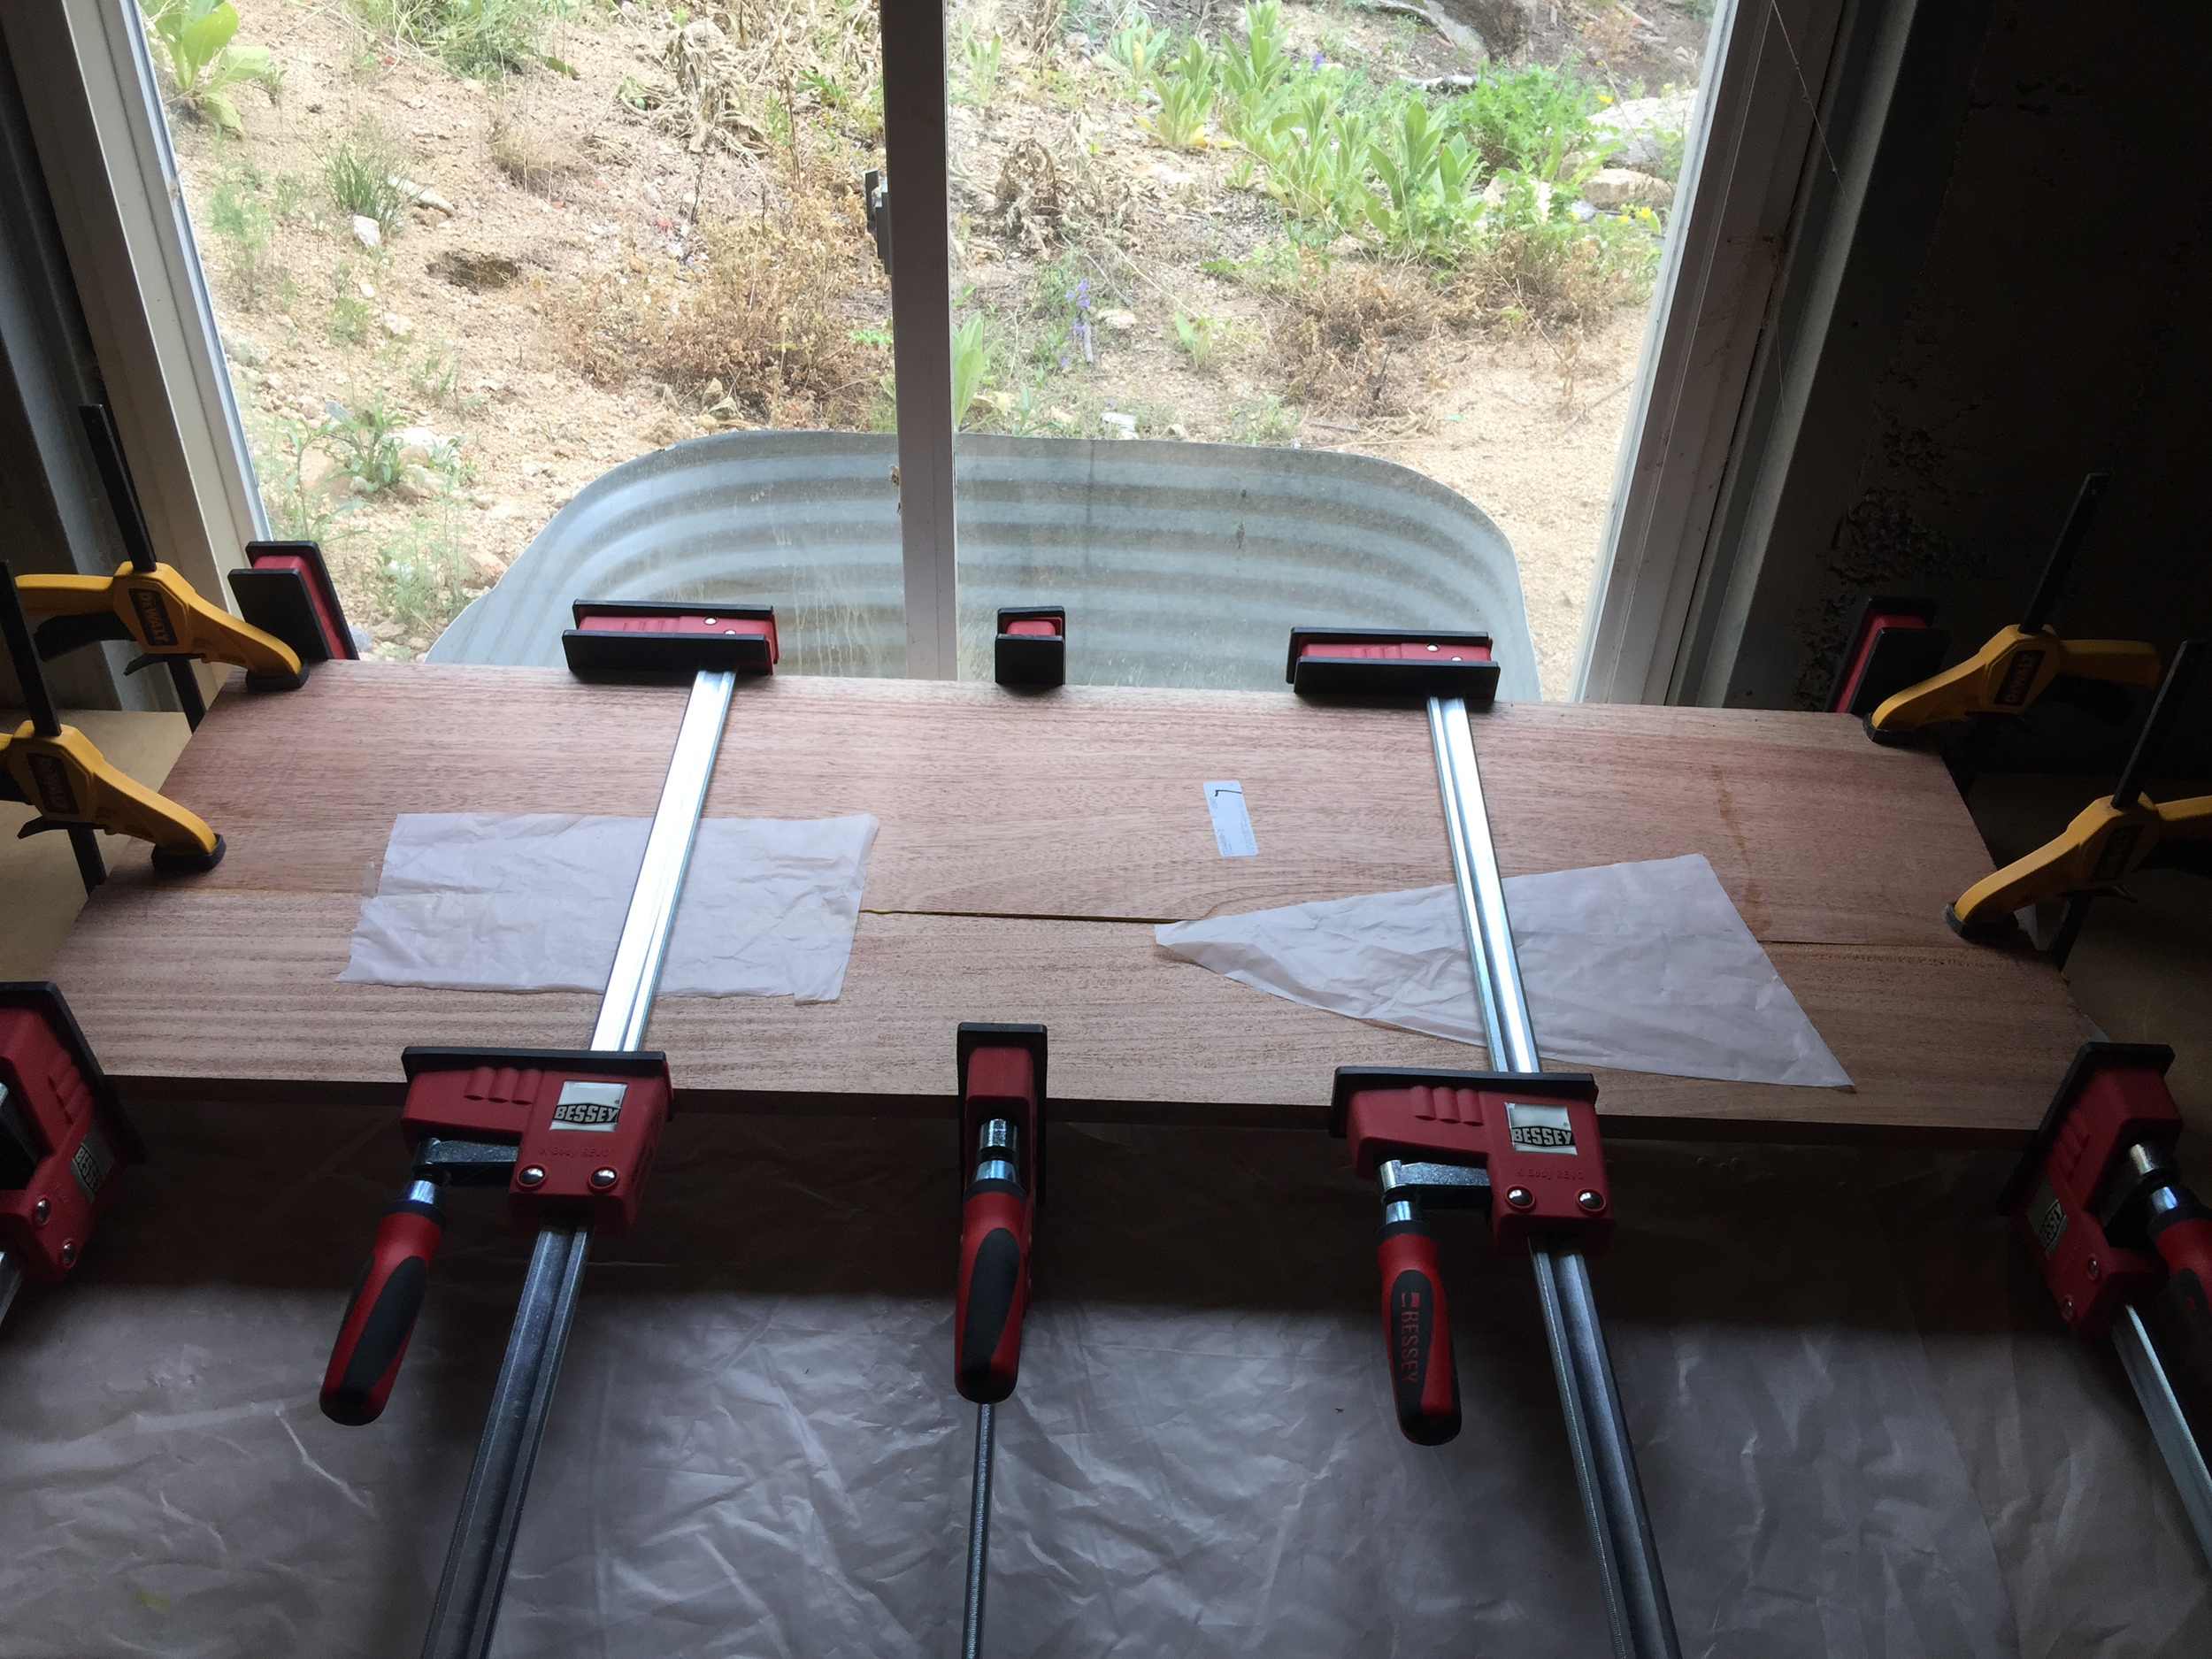 Glue clamps